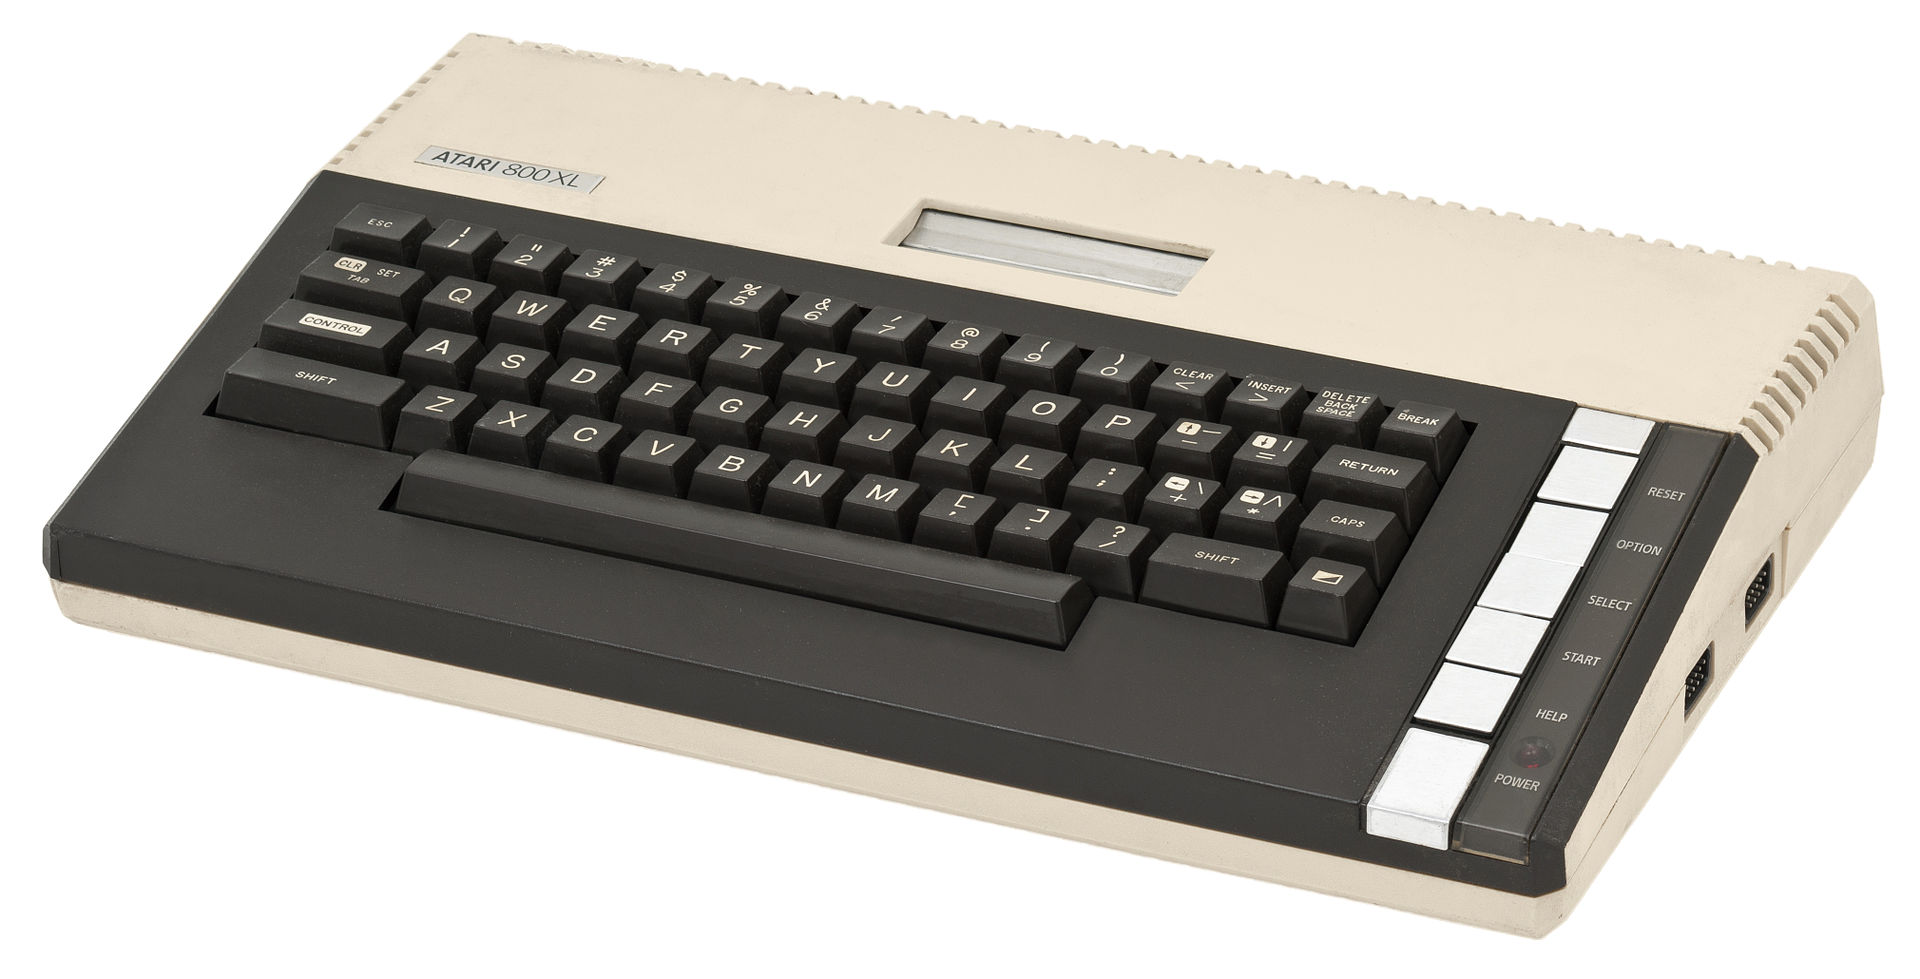 The Atari 800 XL was the first machine Karl considered a REAL computer.